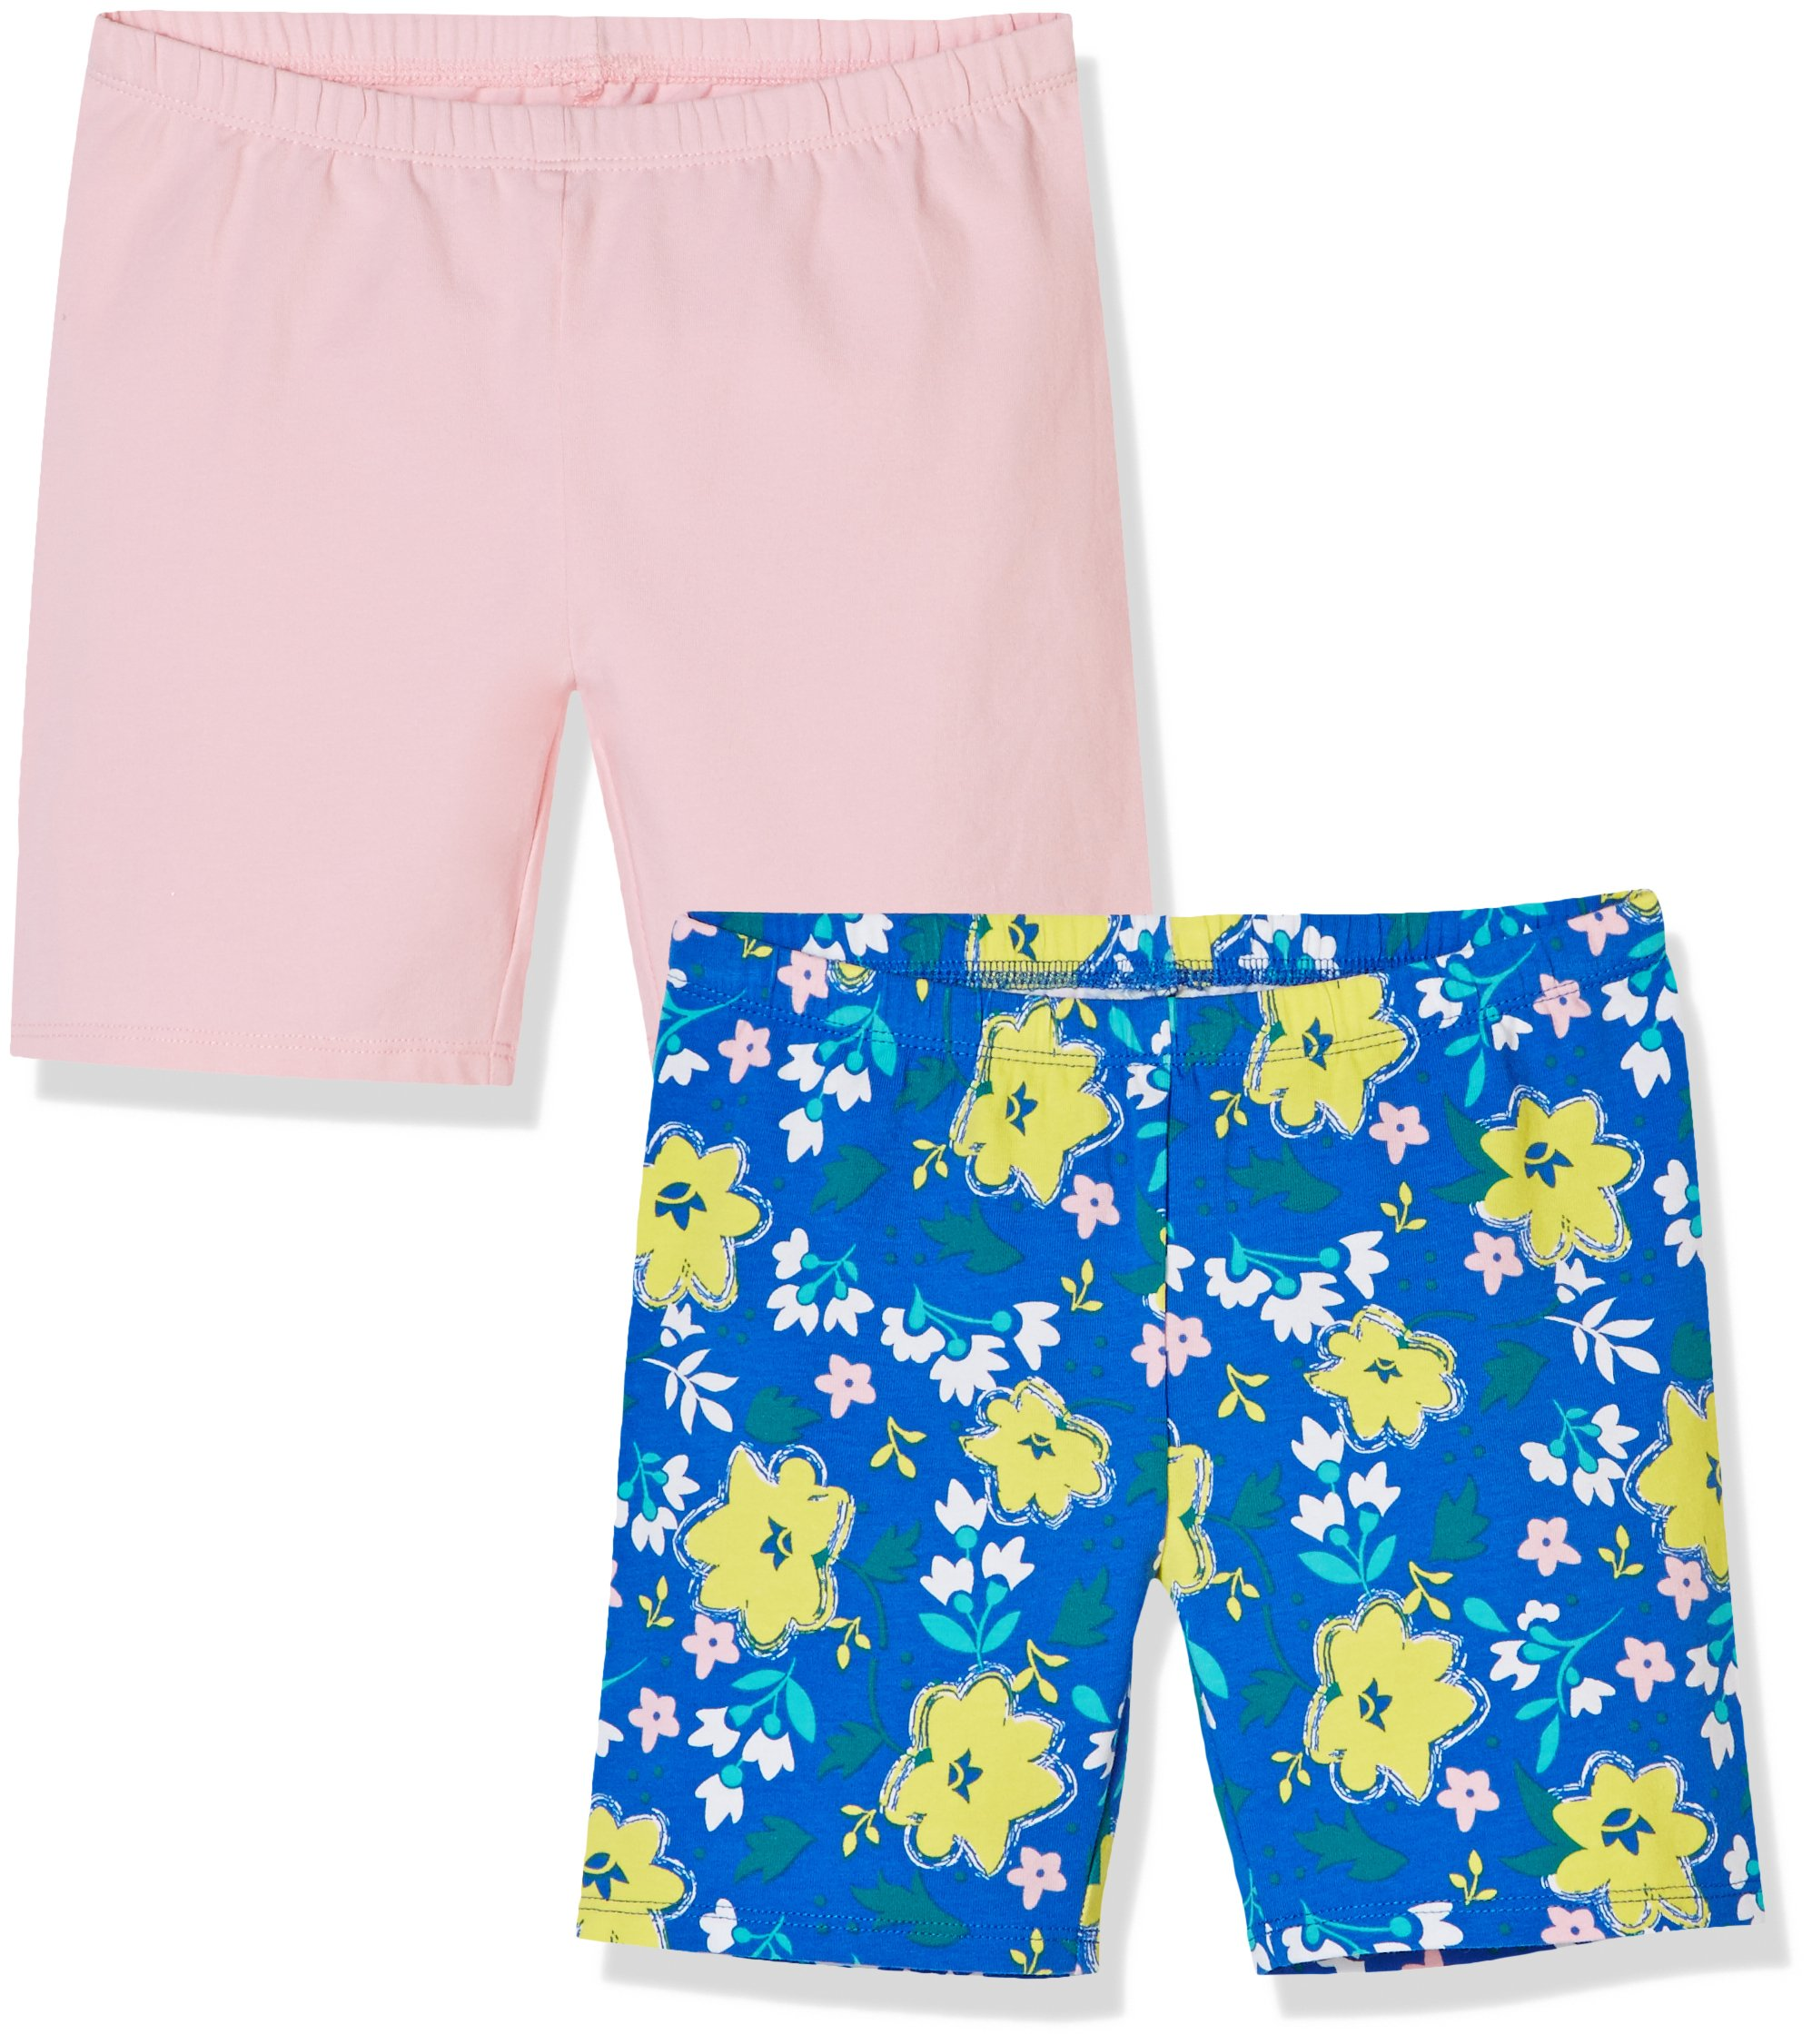 A for Awesome Girls Bike Short 2 Pack X-Small Orchid Pink & Ellis Blue Floral AOP